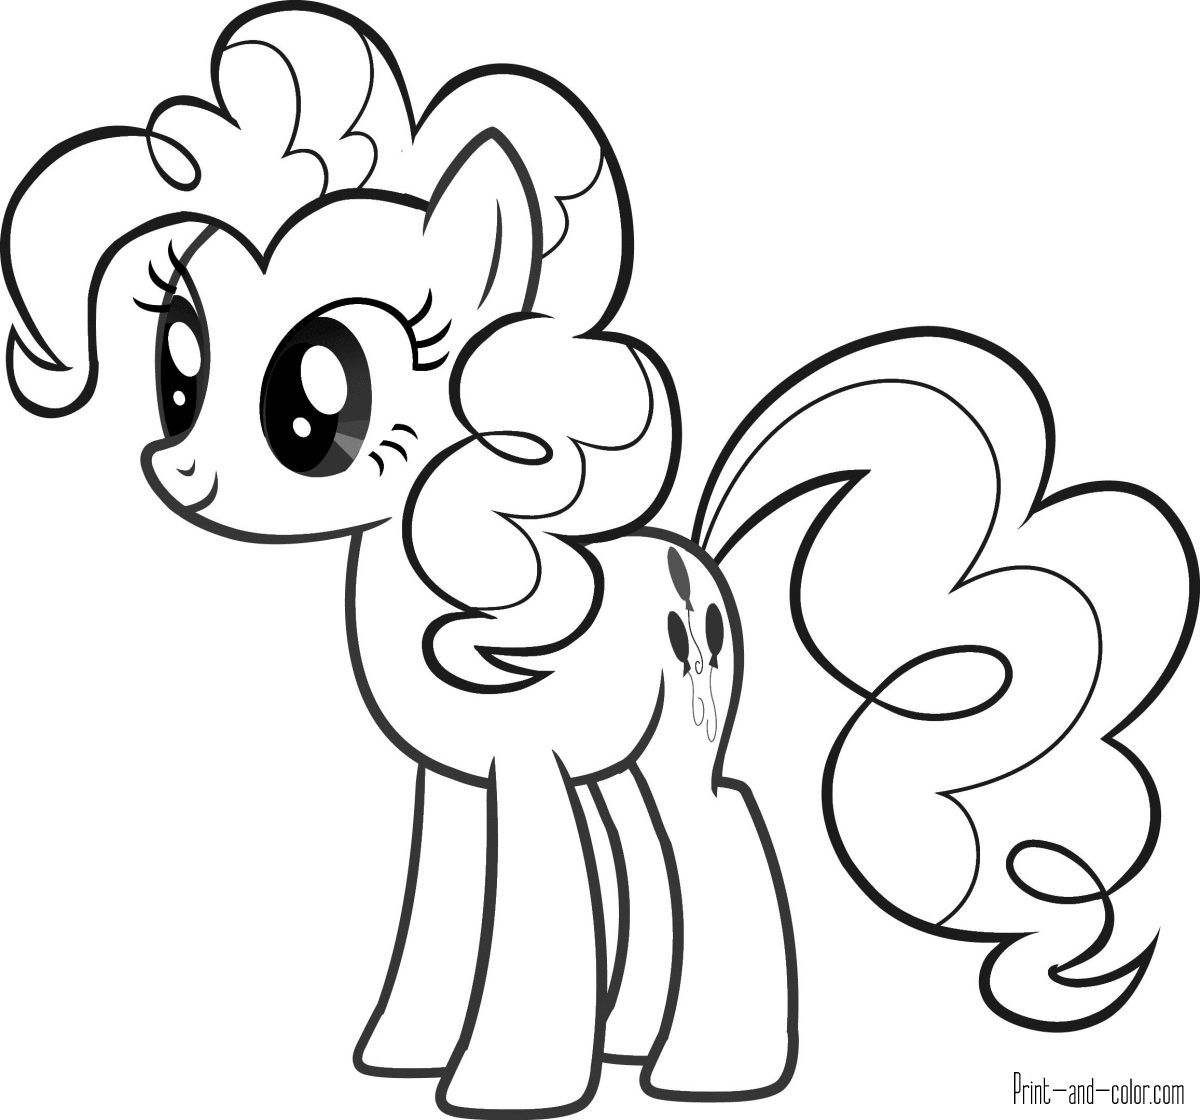 my little pony picture to color free printable my little pony coloring pages for kids little my picture color to pony